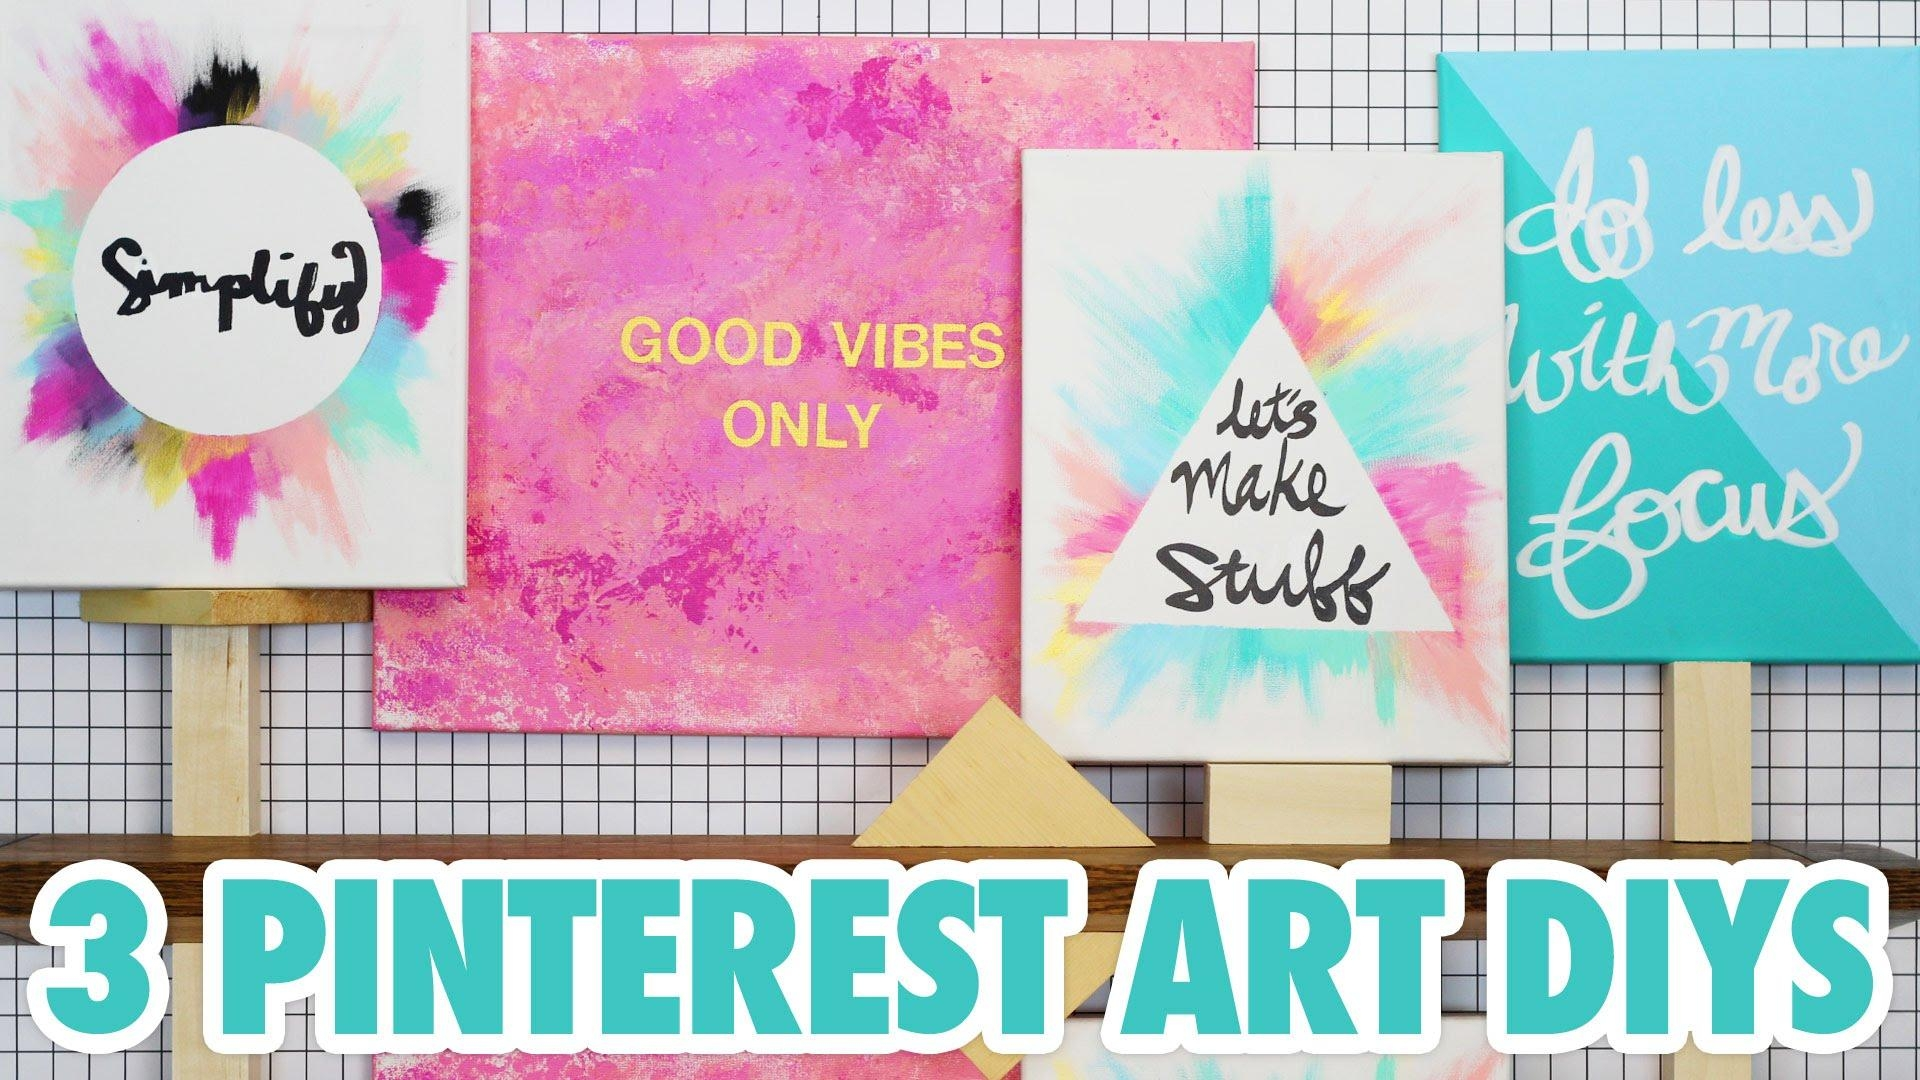 3 Pinterest Art Diys – Hgtv Handmade – Youtube In Diy Pinterest Canvas Art (View 13 of 20)